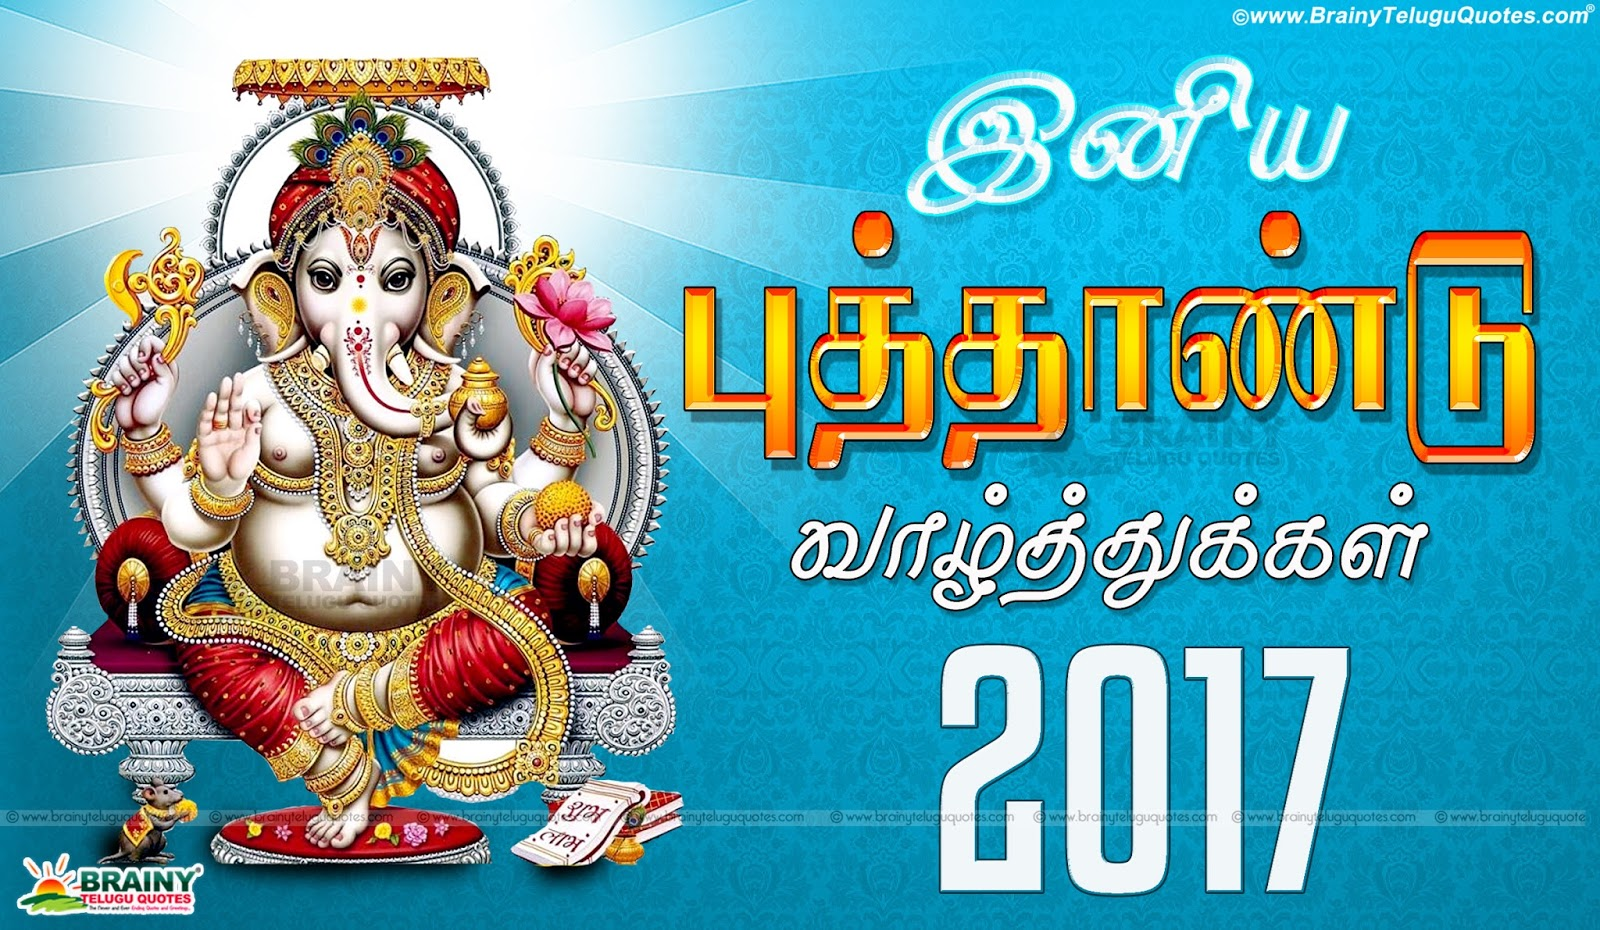 Latest tamil happy new year 2017 greetings with hd wallpapers tamil quotes best tamil new year greetings tamil online quotes hd wallpapers kristyandbryce Image collections